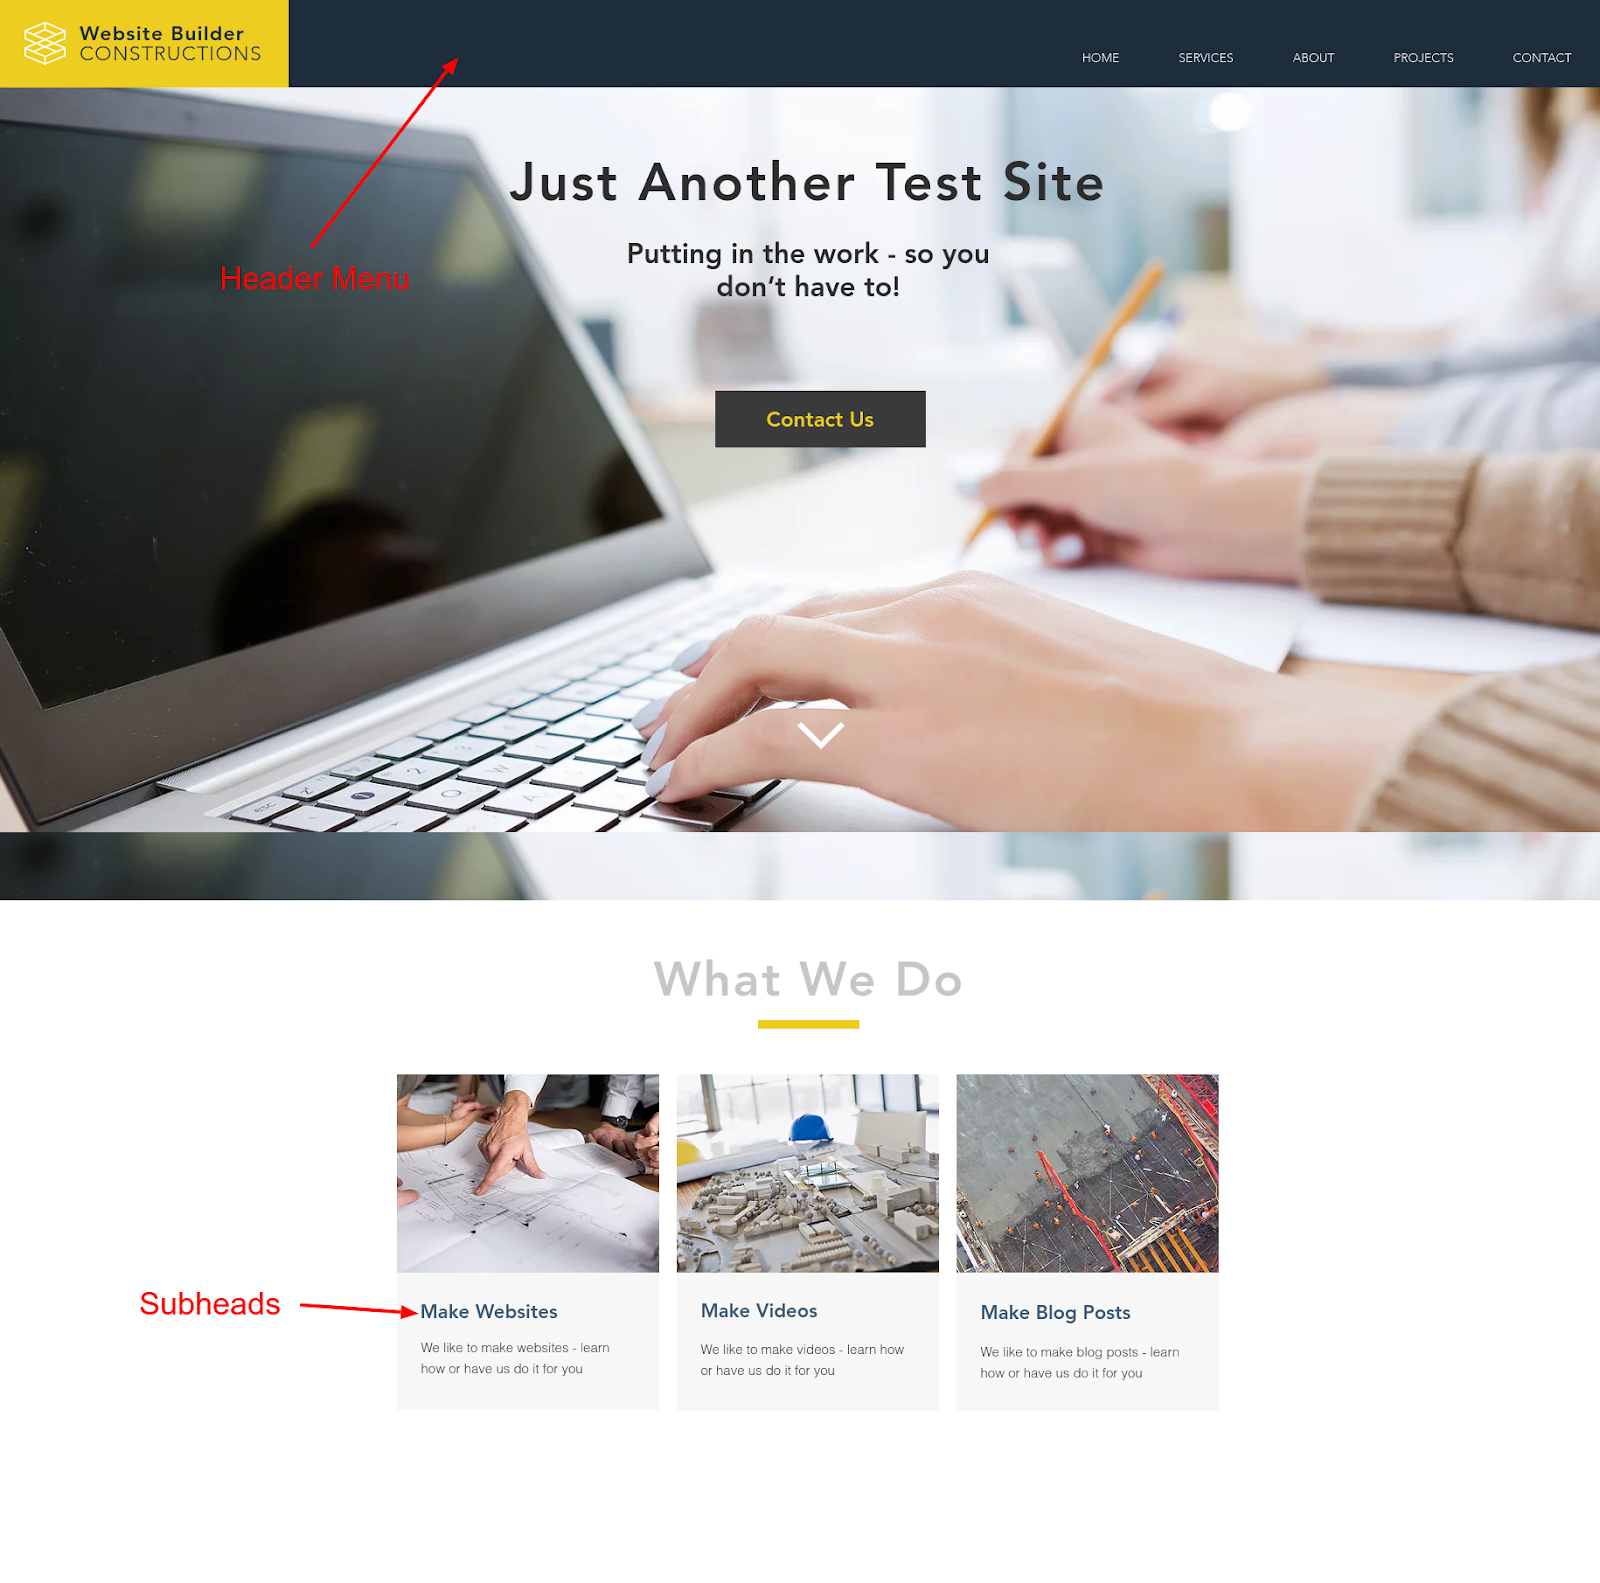 website color schemes secondary color example annotated